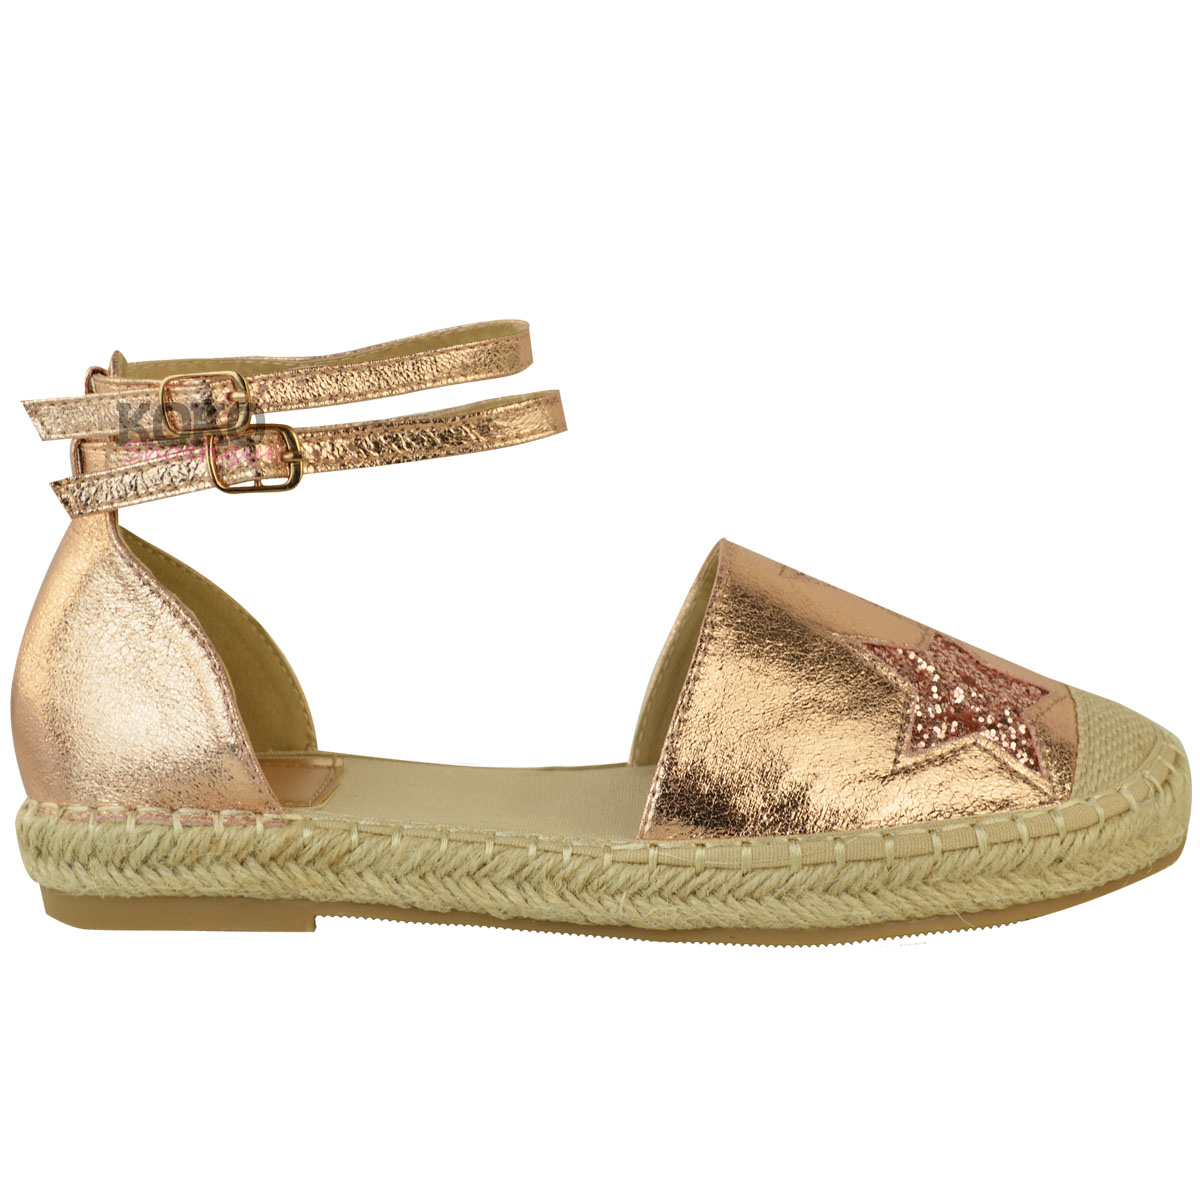 Womens Ladies Flat Espadrilles Rose Gold Sandals Ankle ...